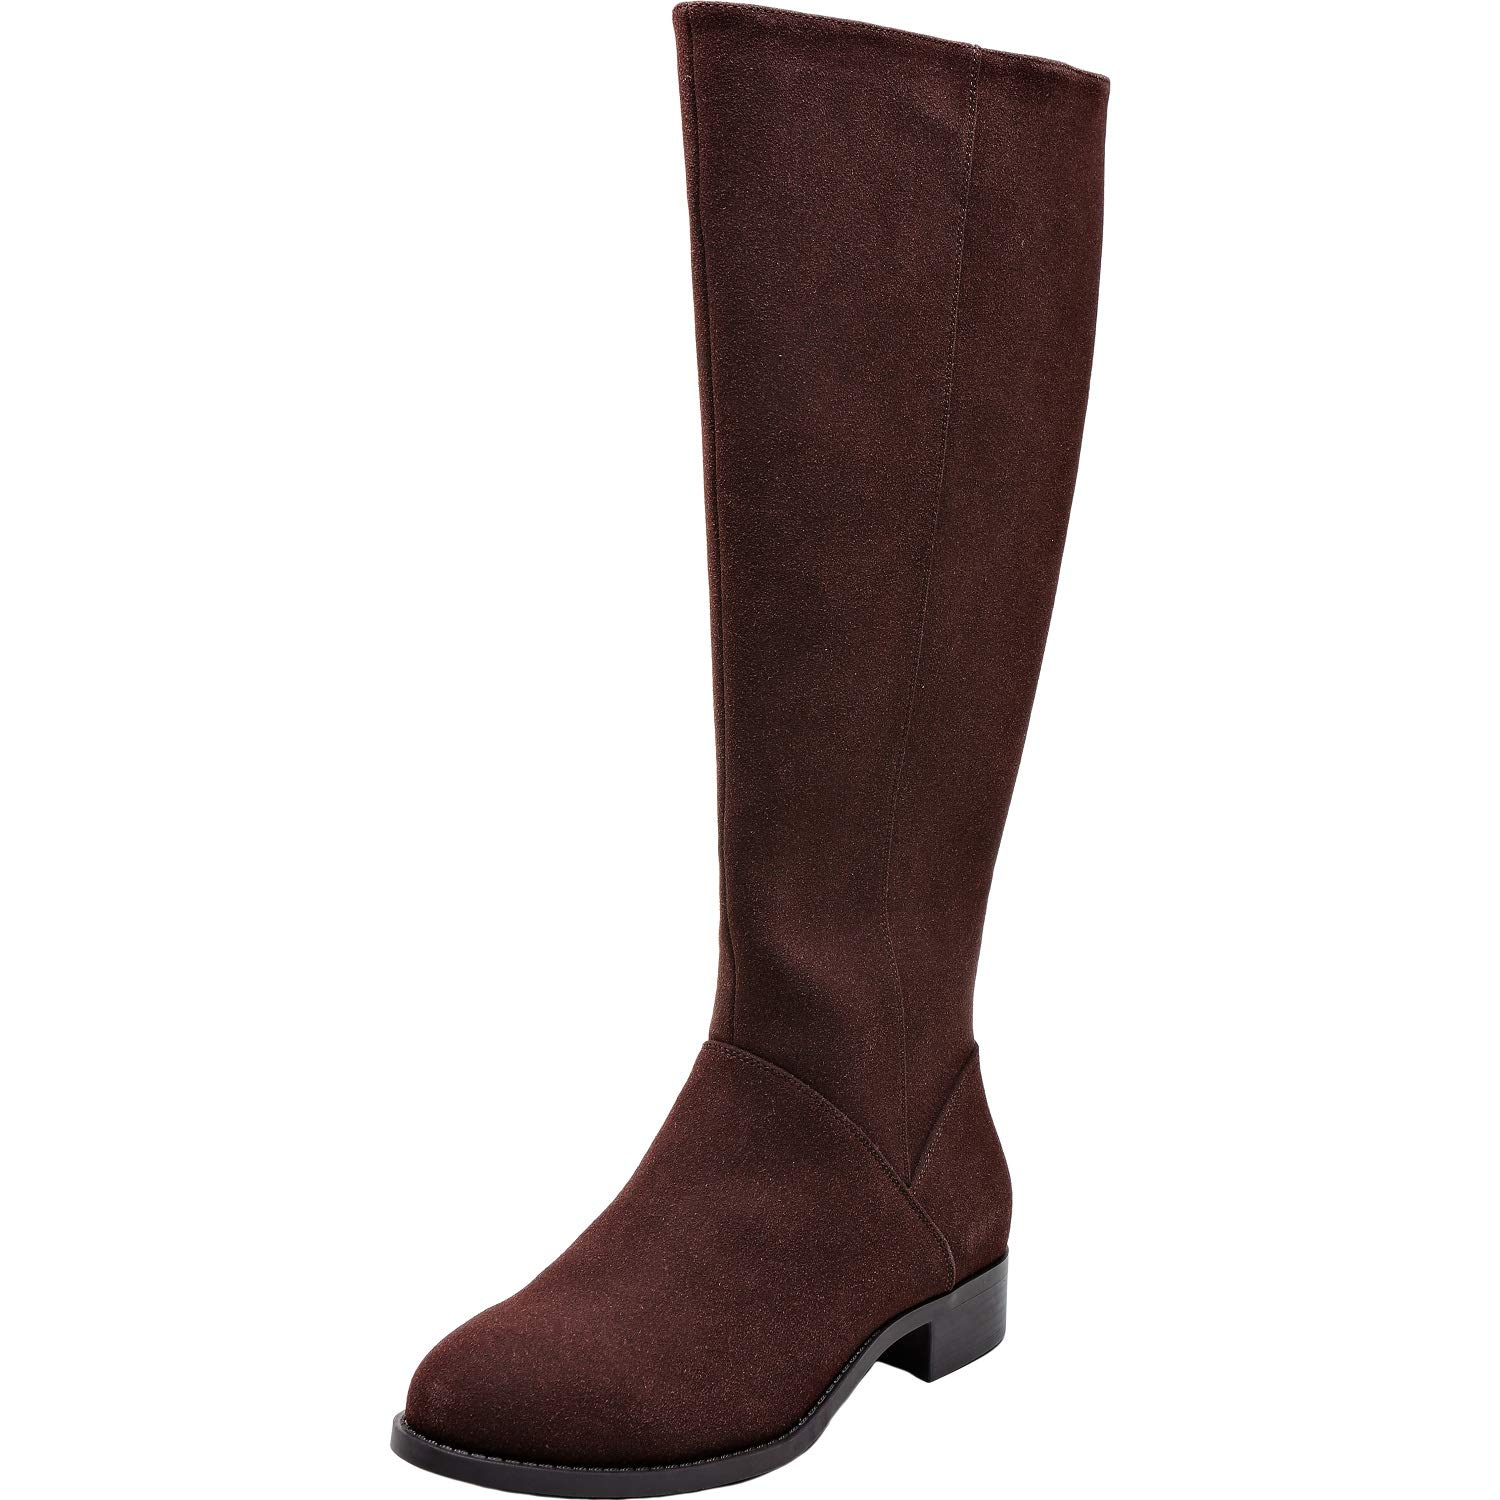 619081681ce Amazon.com  Aukusor Women s Wide Width Knee High Boots - Chunky Low Heel  Buckle Detial Elastic Zipper Winter Boots.(Extra Wide Calf)  Shoes